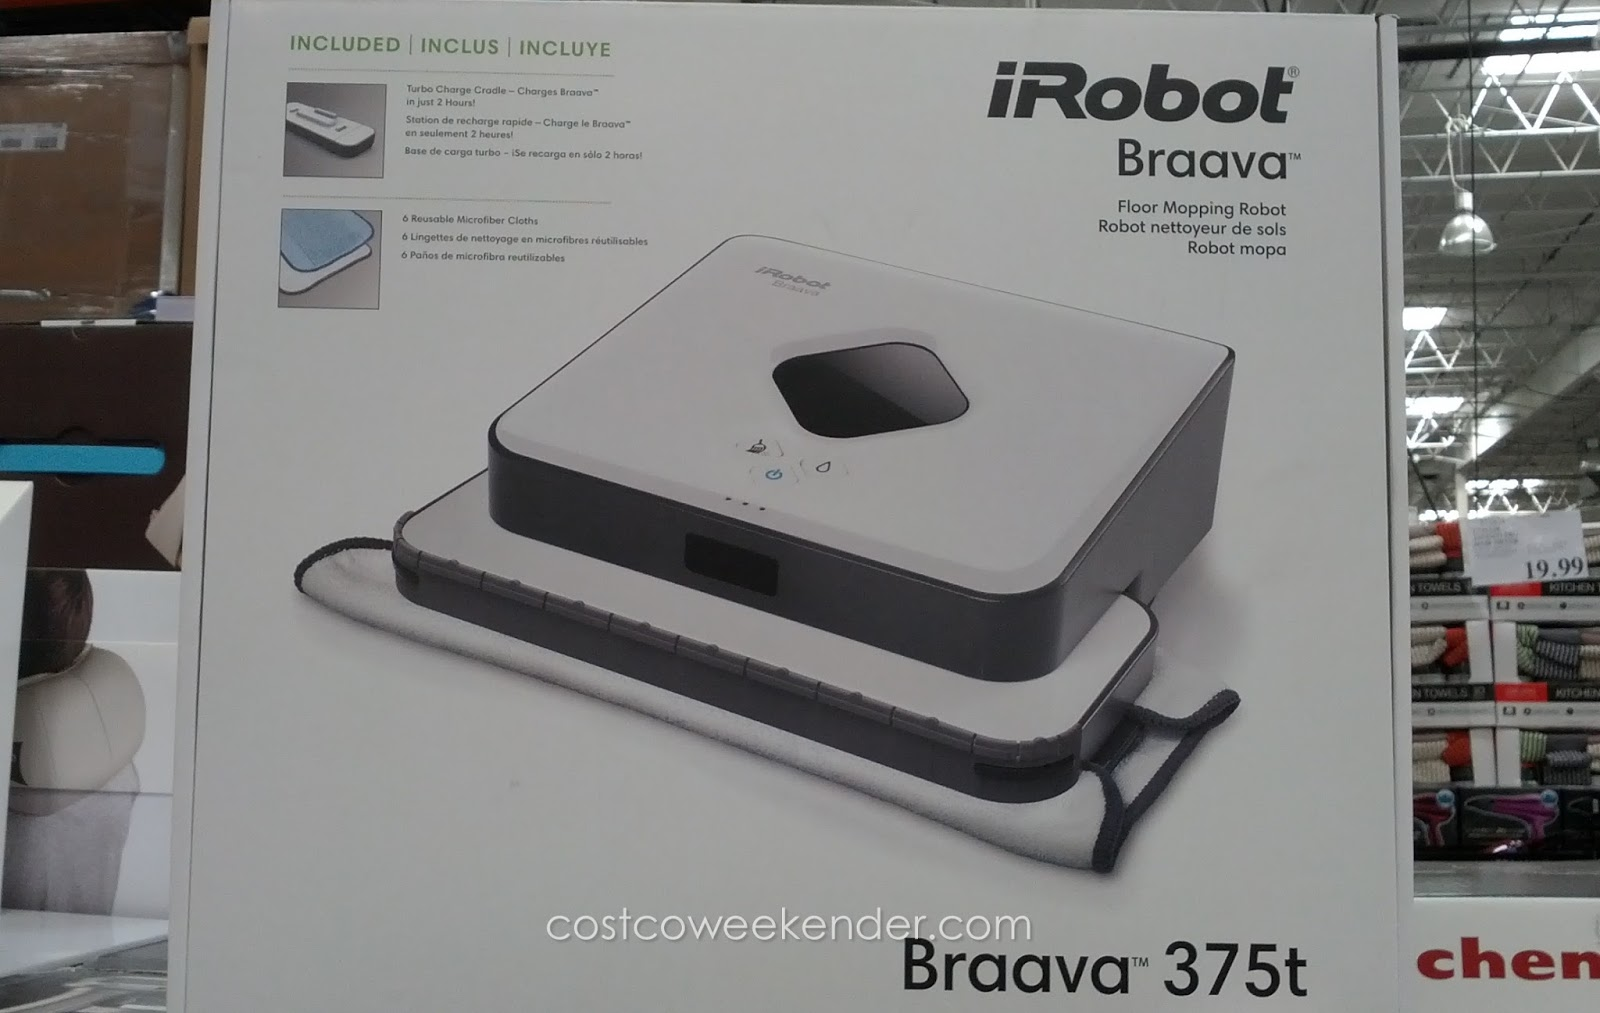 home braava the blog tried tested irobot living mopping mop and road harvey testing robot floor floors